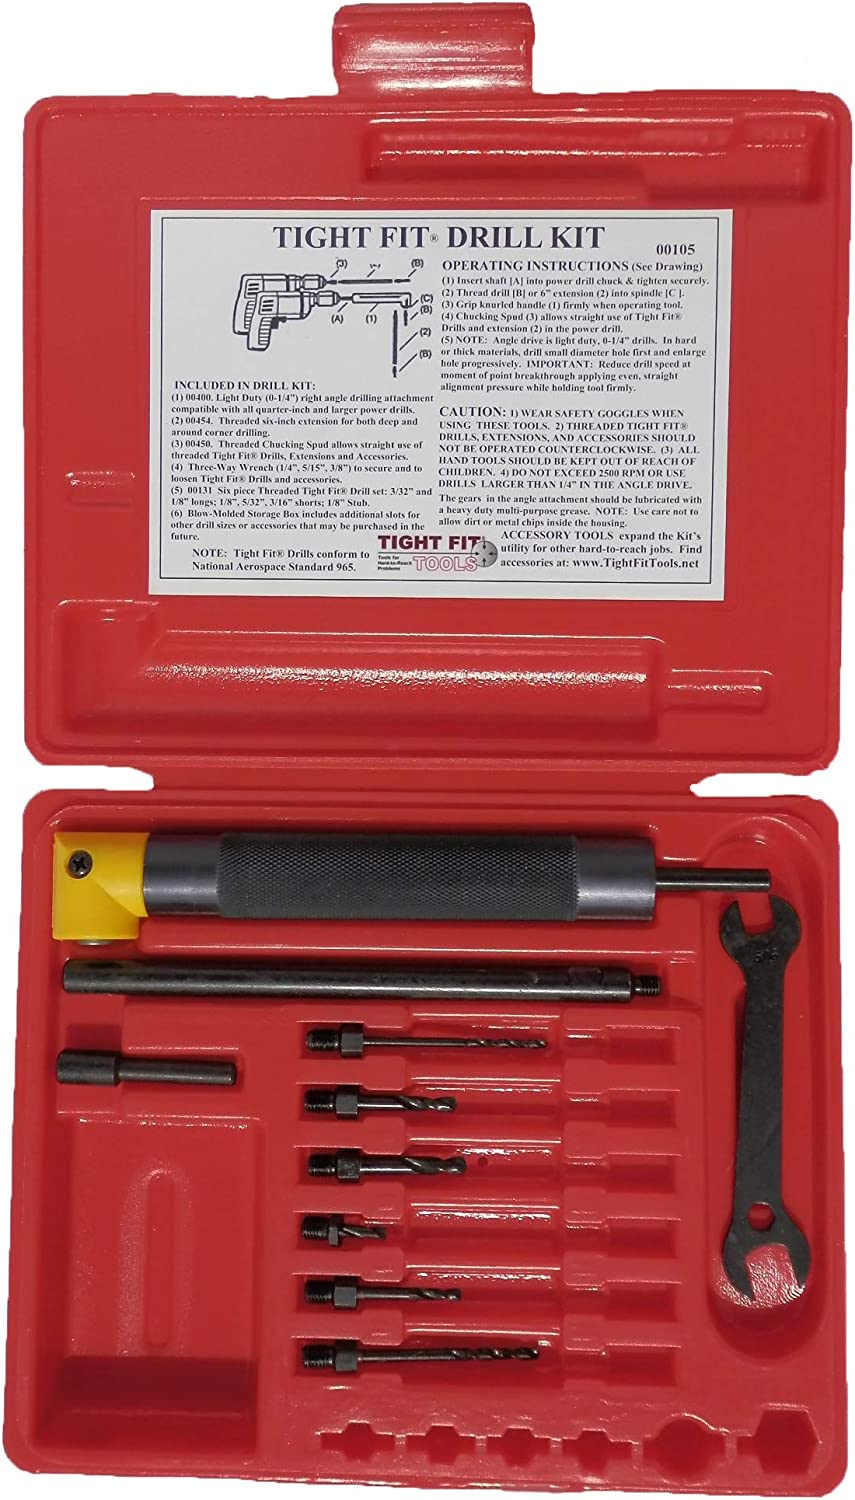 Tool Gift Finally resale start Right Angle Drill Tight Attachment Fit Virginia Beach Mall Kit A